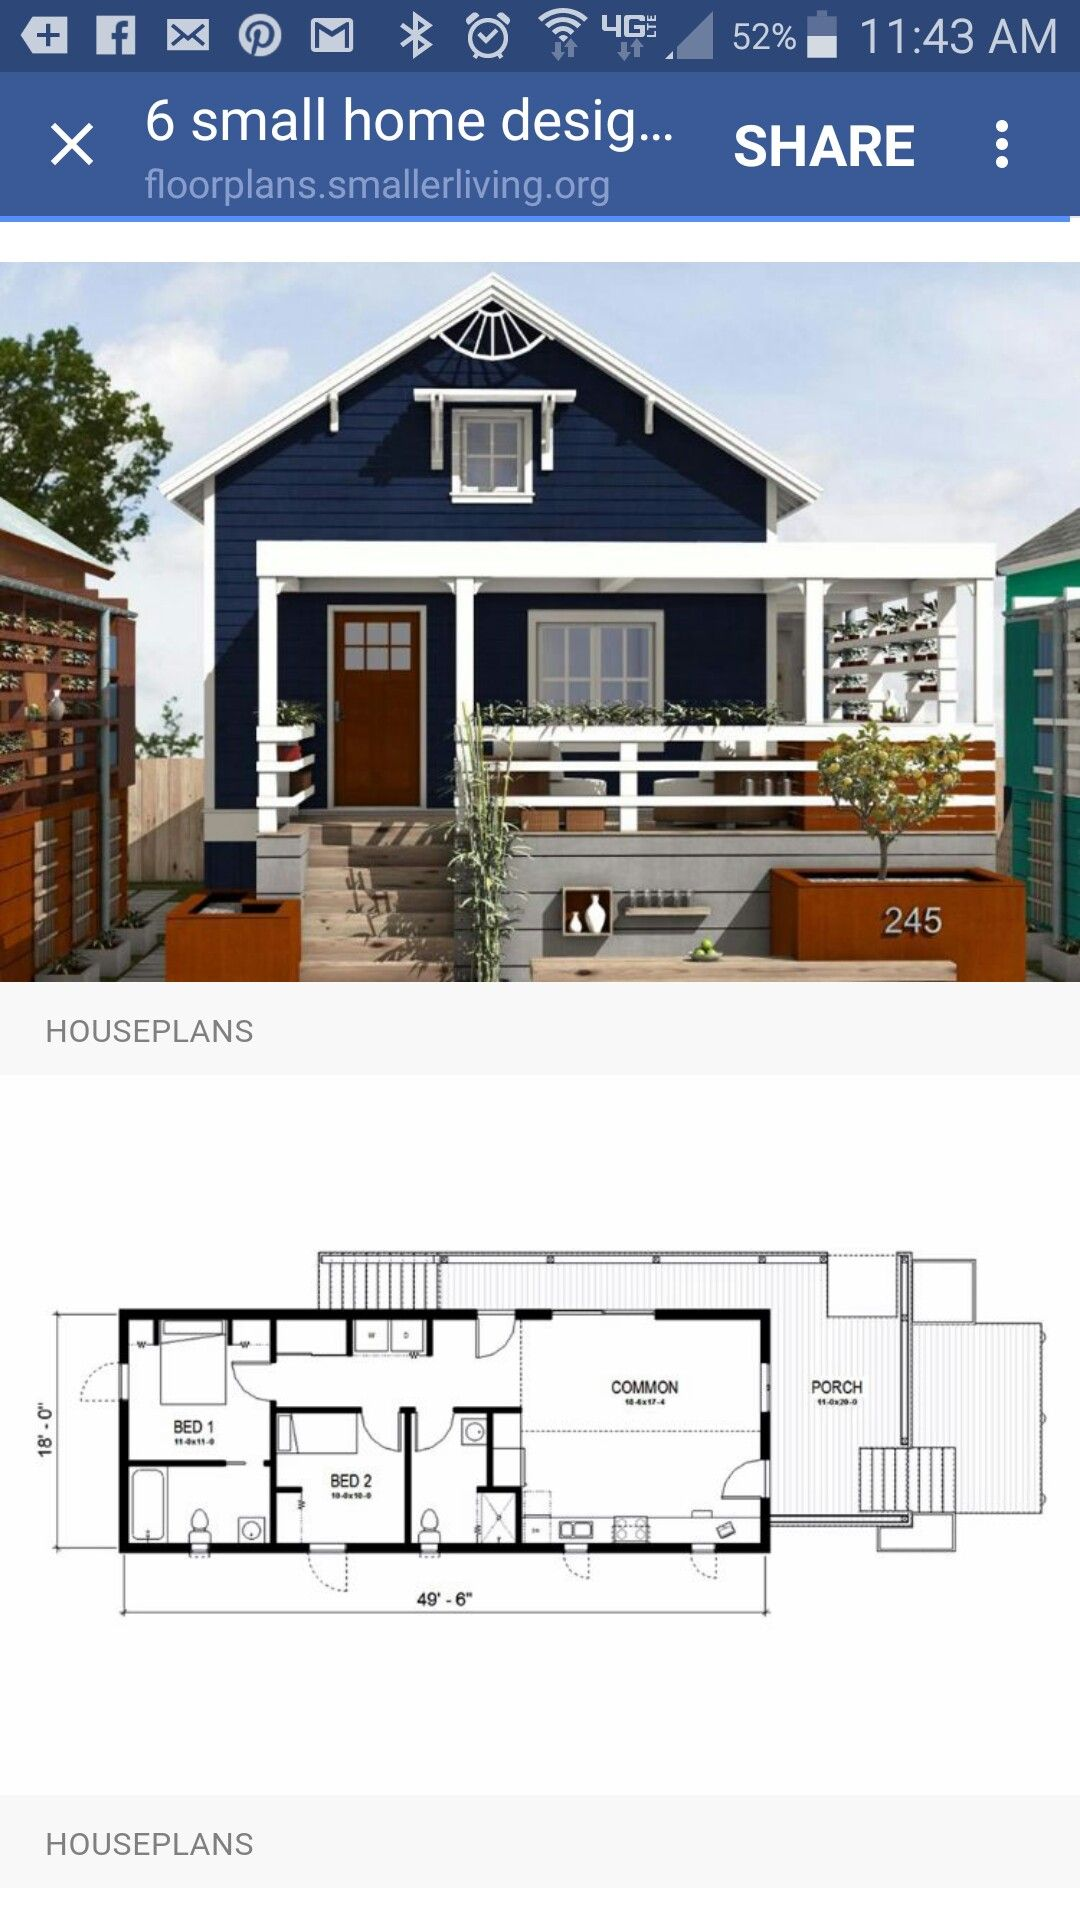 Pin By Arcode Architecture On Small Homes Small House Design Rest House House Plans